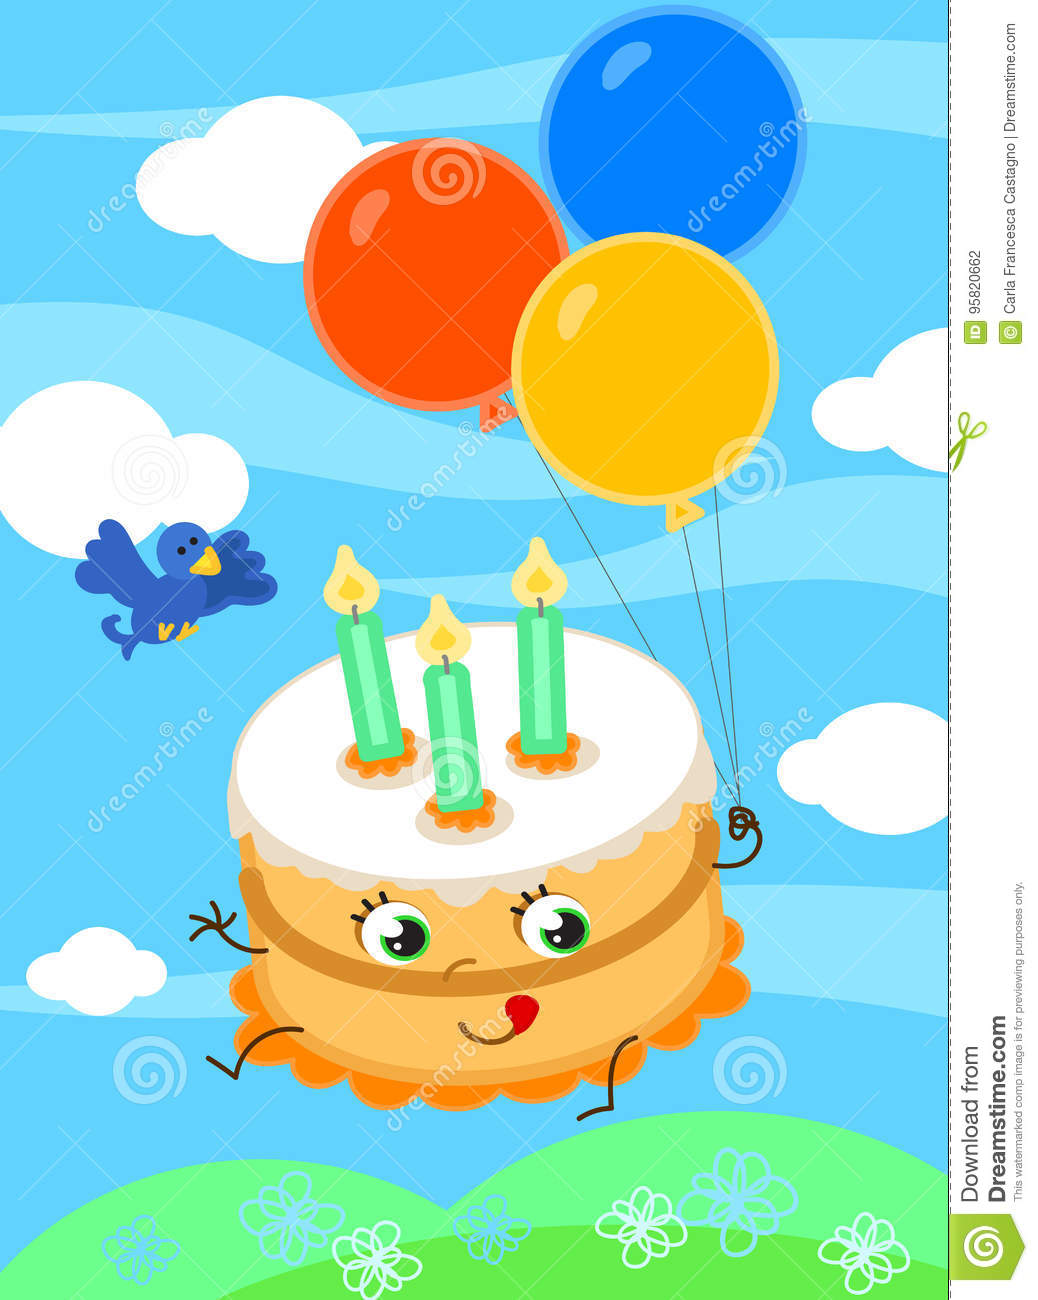 Cute Birthday Cake With Balloons Vector Stock Vector Illustration